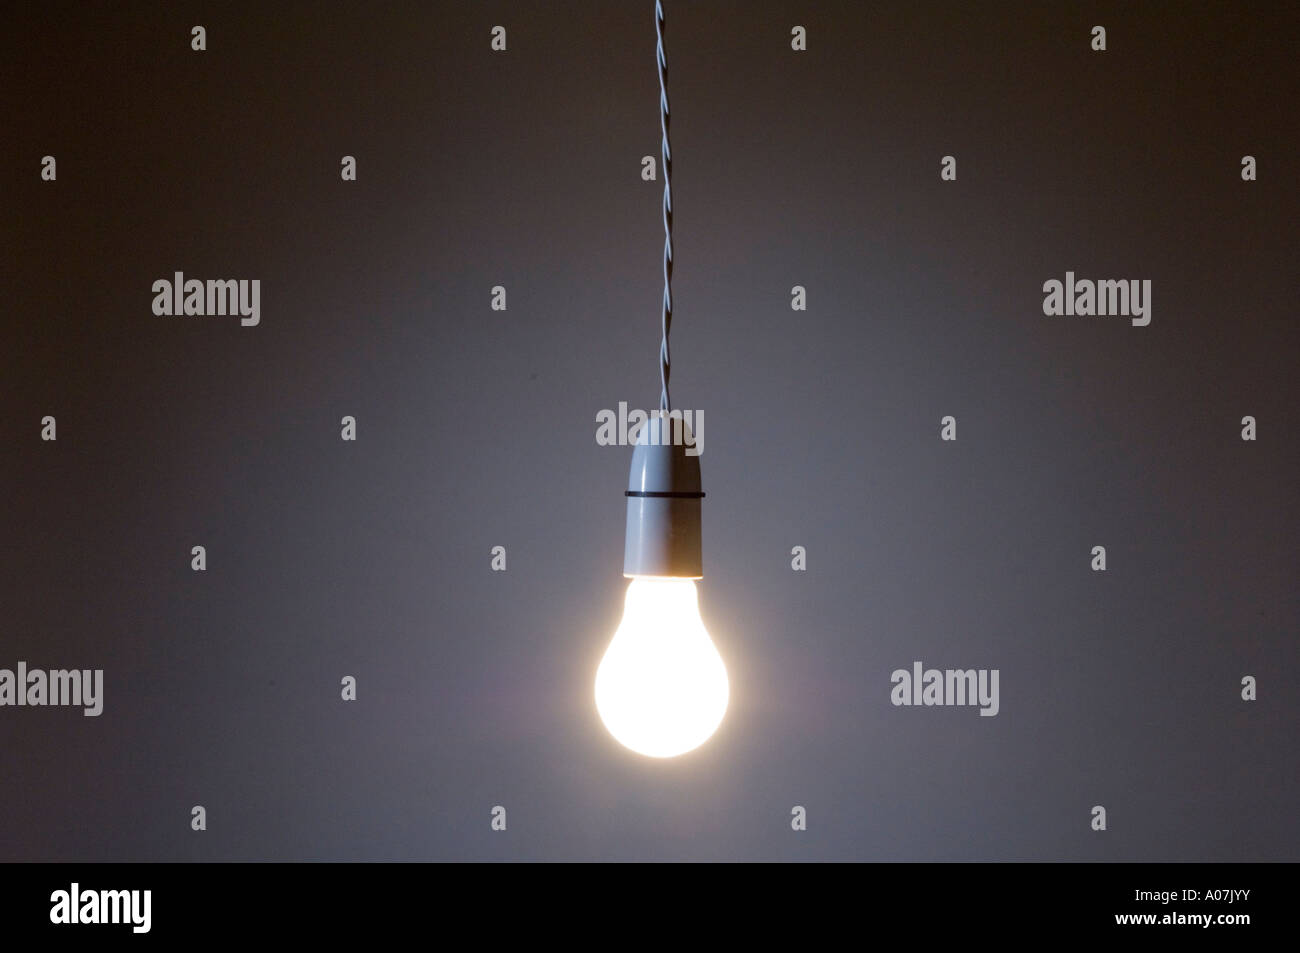 an incandescent lightbulb hanging by a twisted flex wire stock an incandescent lightbulb hanging by a twisted flex wire